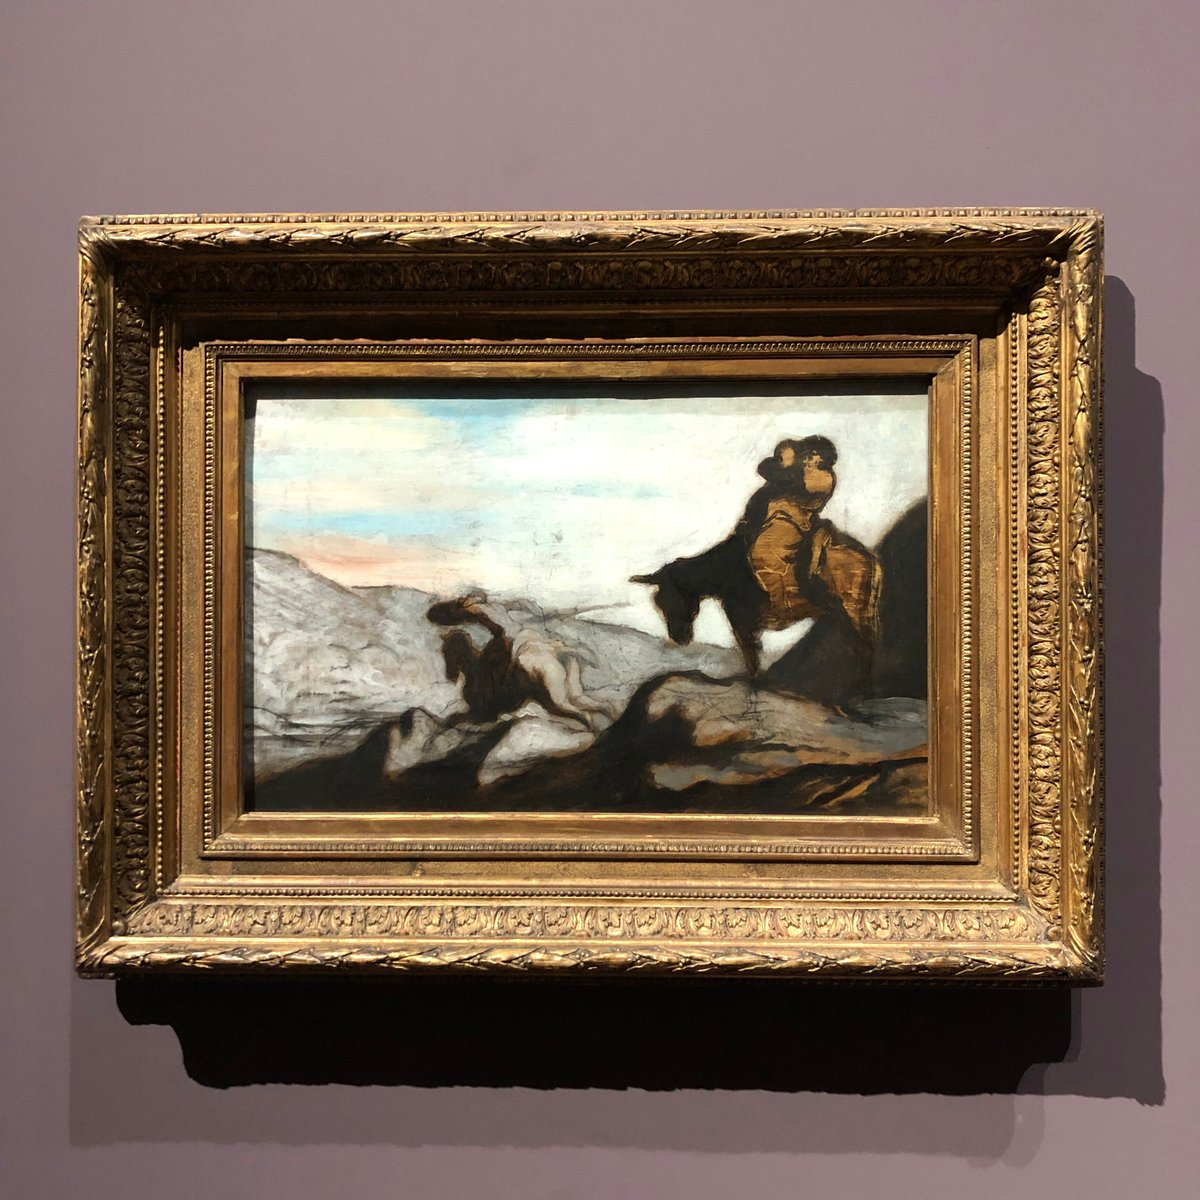 Did you know that #HonoréDaumier was called the 'Michelangelo of caricature'? Although he painted over 500 oil paintings, he only met success as a painter the year before he died. #Daumier died on this day, 10 February 1879. This is 'Don Quixote and Sancho Panza'<br>http://pic.twitter.com/4OVA0Wa0Q8